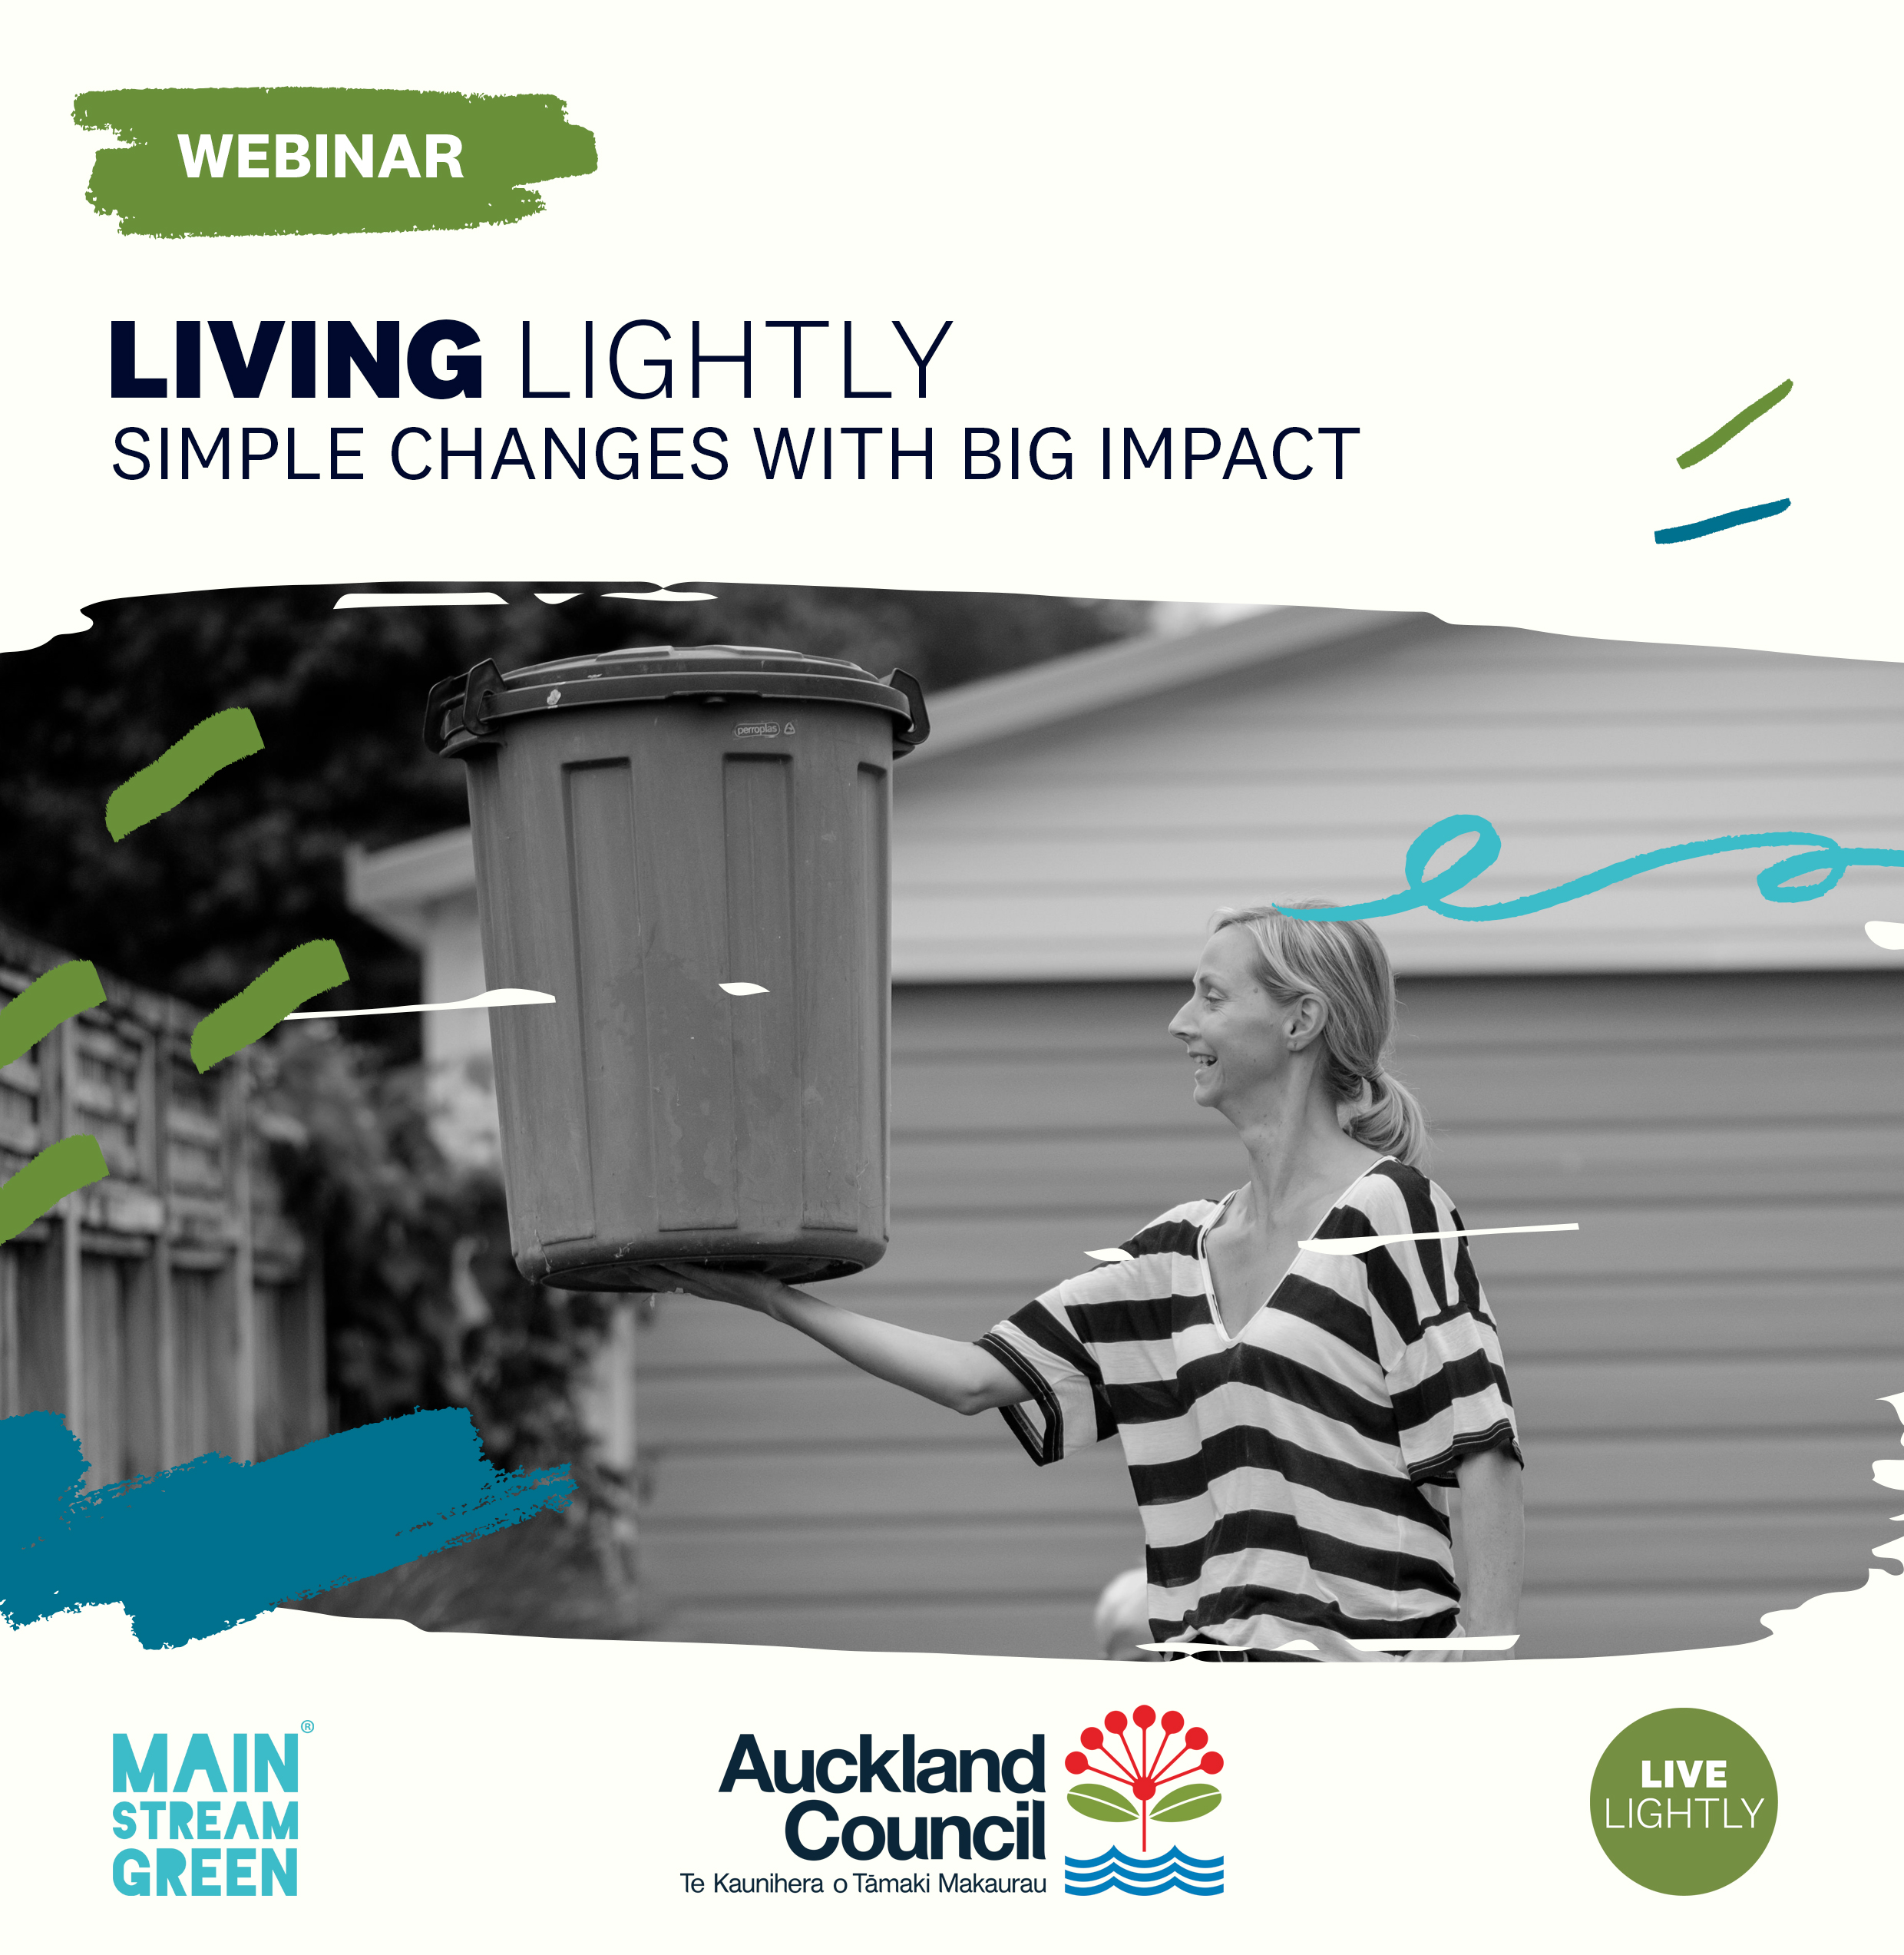 Living Lightly: Simple changes with big impact